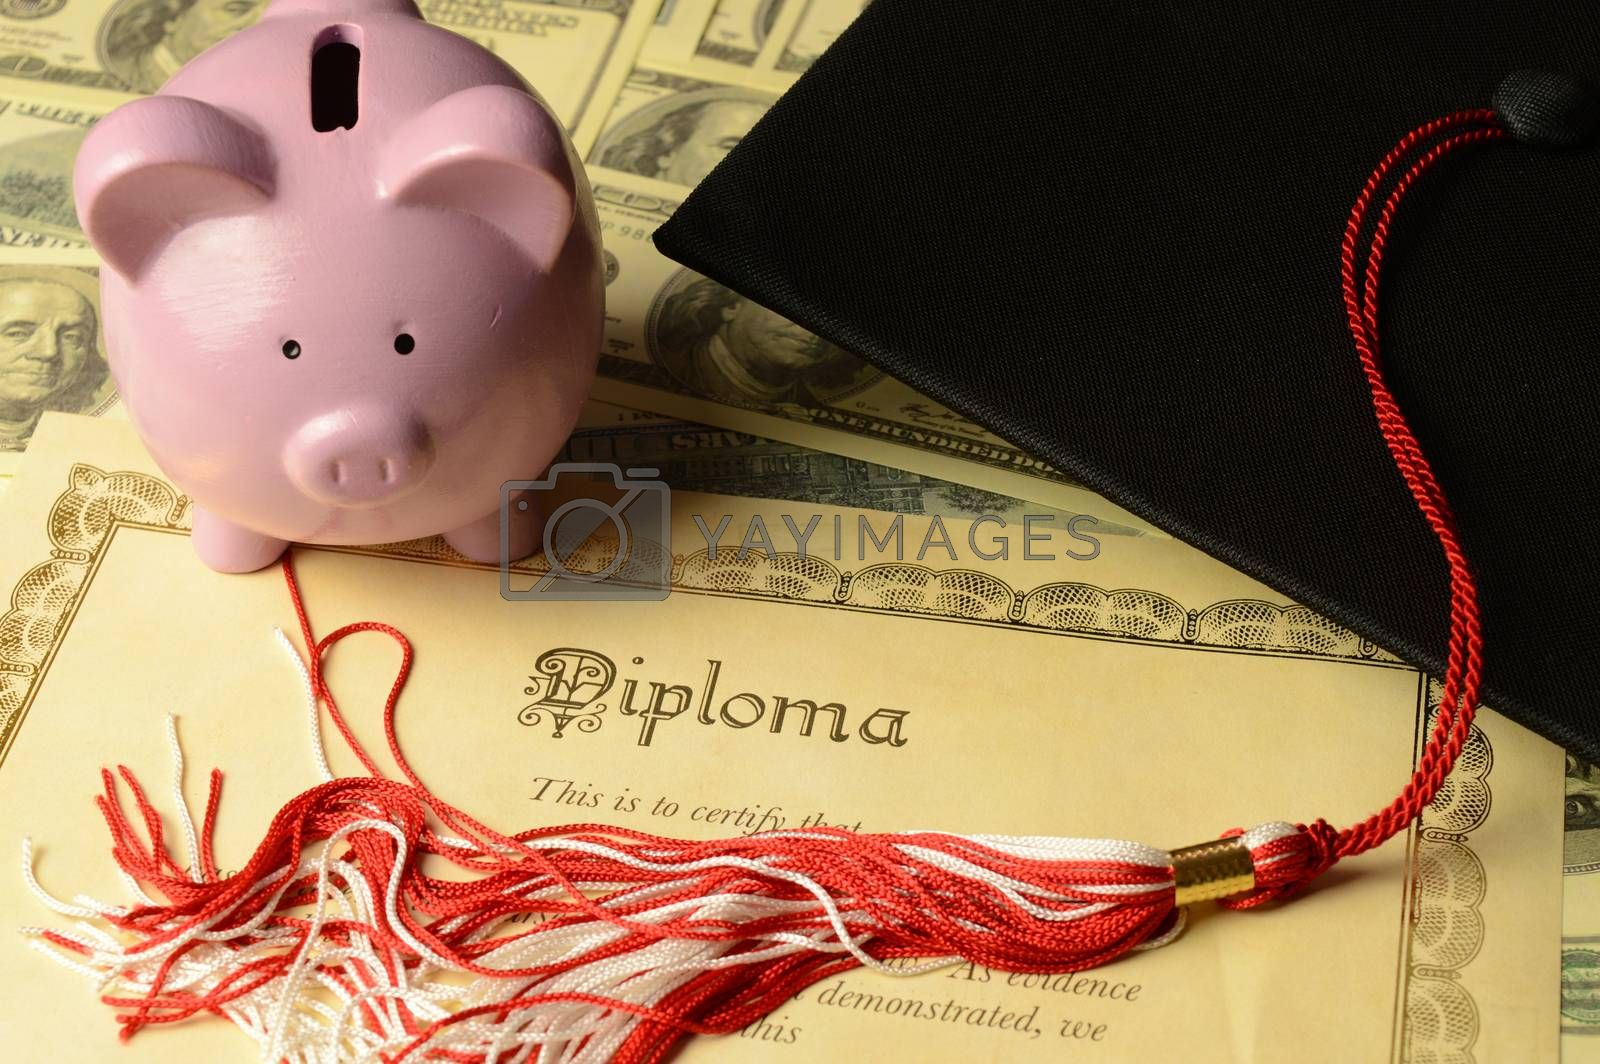 A conceptual image based on the financial aspects involved with obtaining a diploma certificate of graduation.